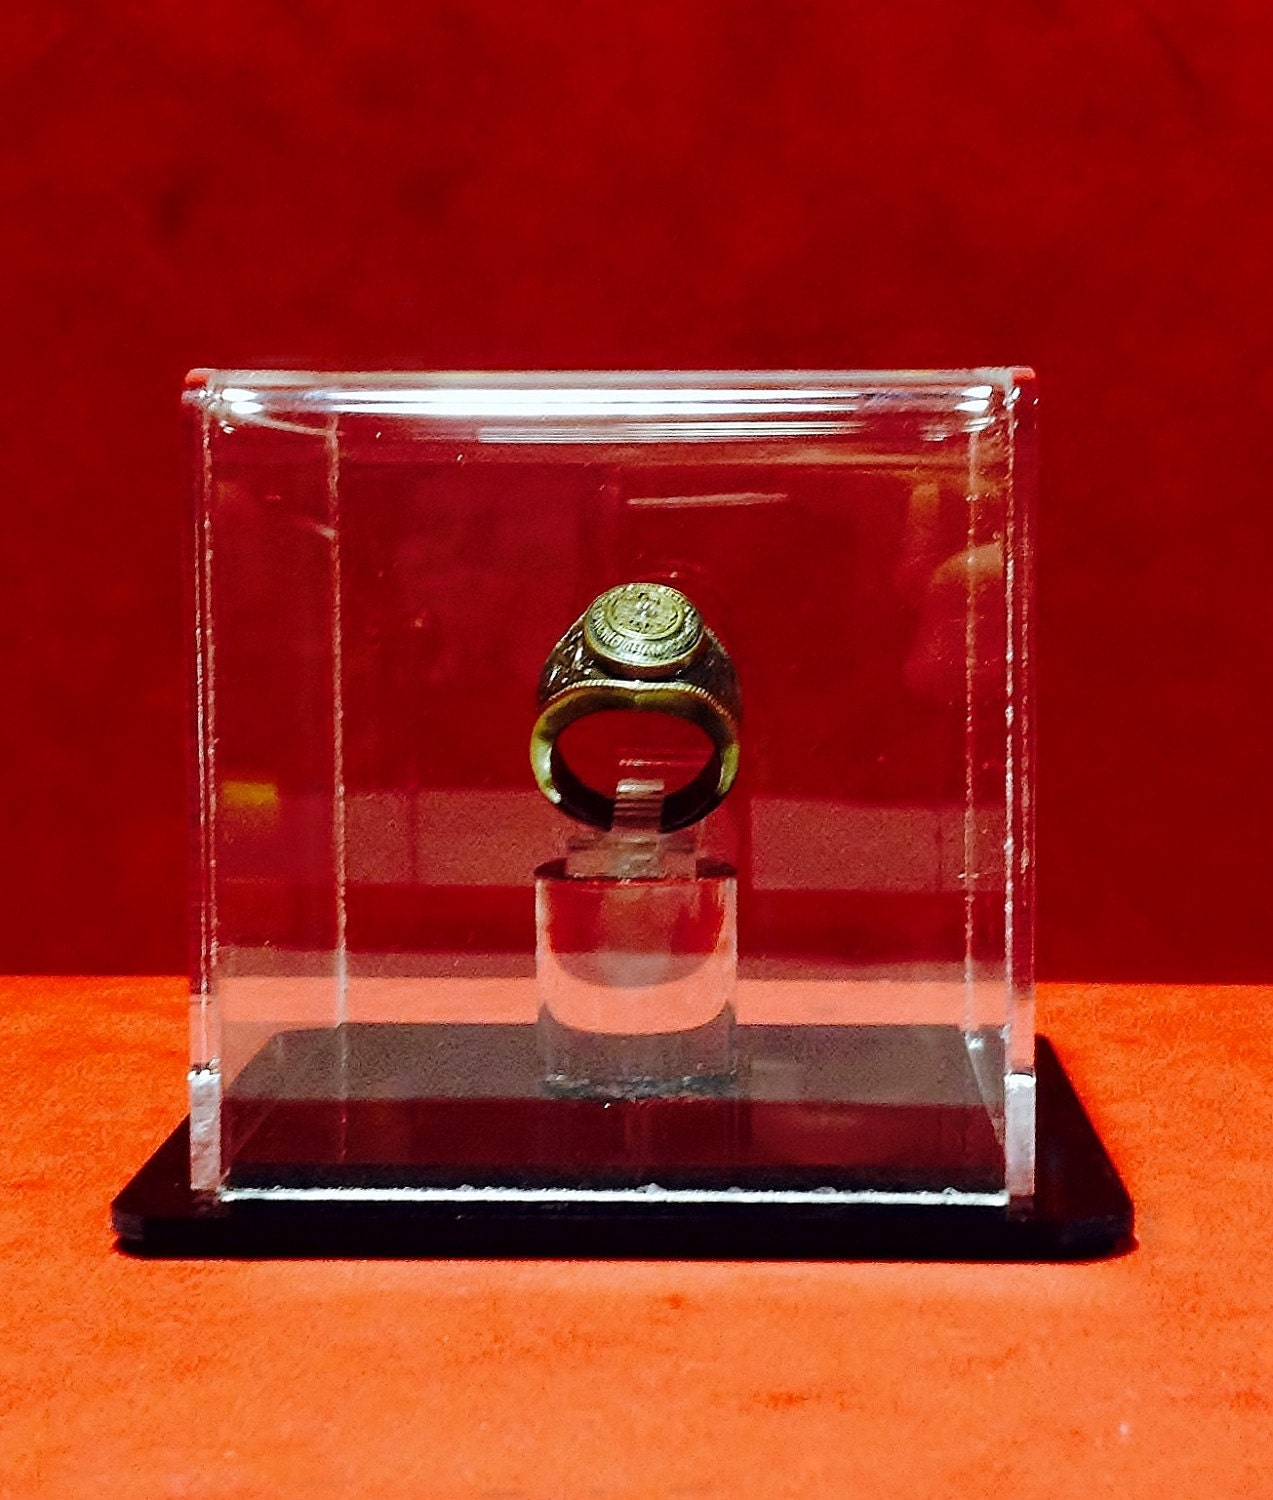 Ring display case for collectors rings championship rings or for Ring case